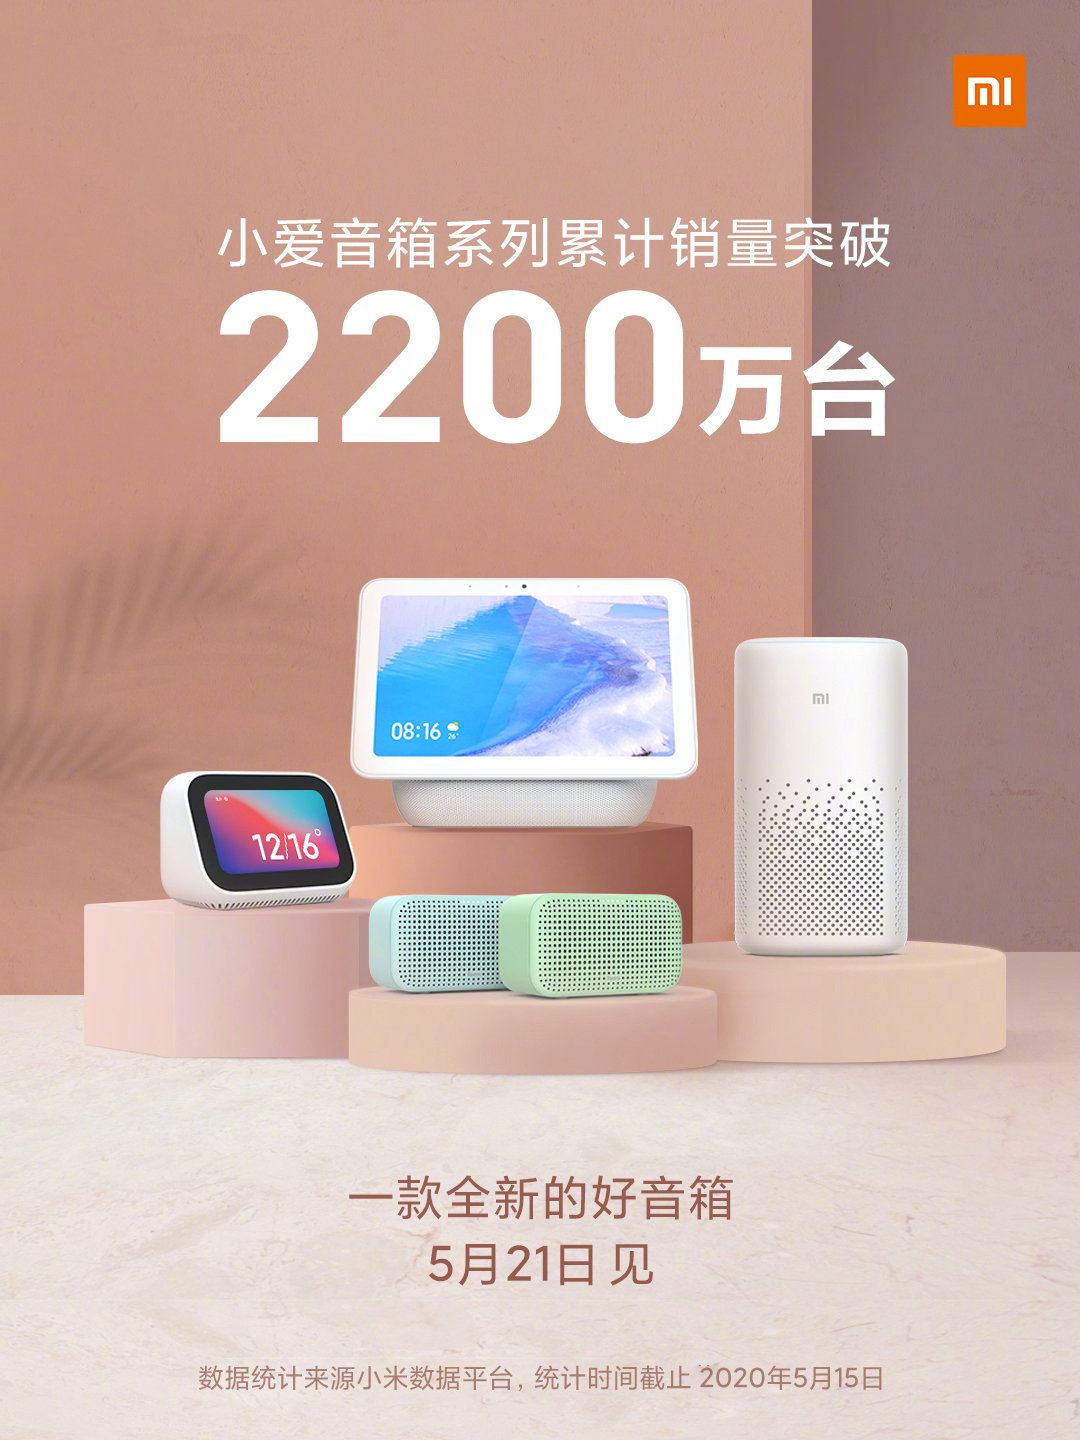 With more than 22 million units sold, Xiaomi will renew its range of smart speakers on May 21